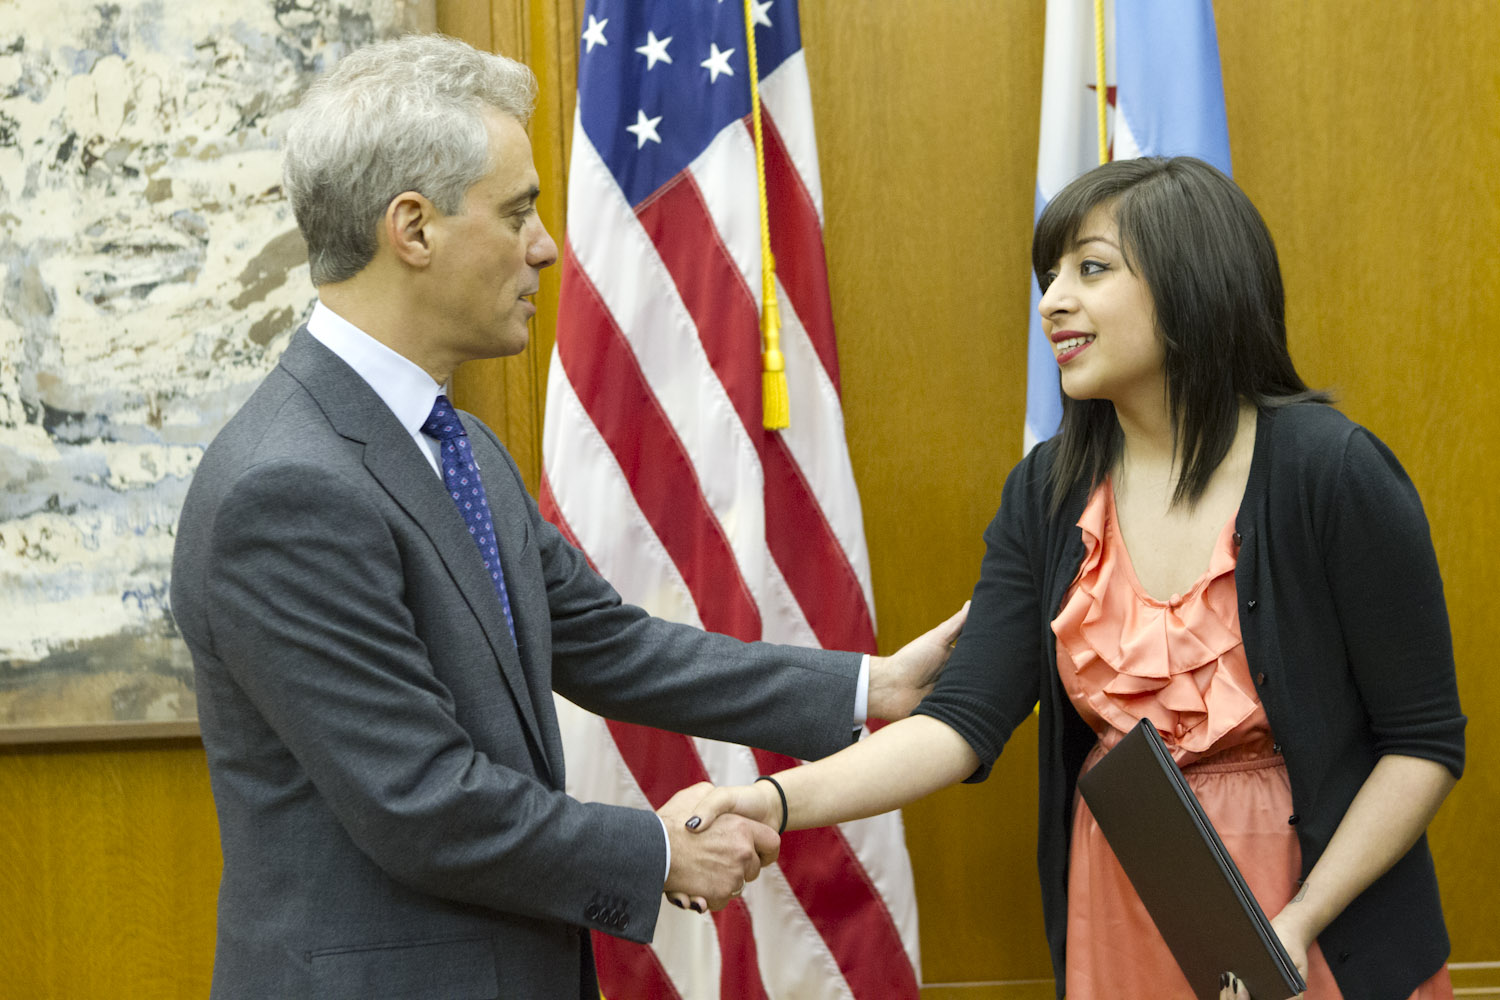 Mayor Emanuel Recognizes Chicago College Student Ariel Aguilera for Civic Leadership and Highlights the Importance of Volunteerism